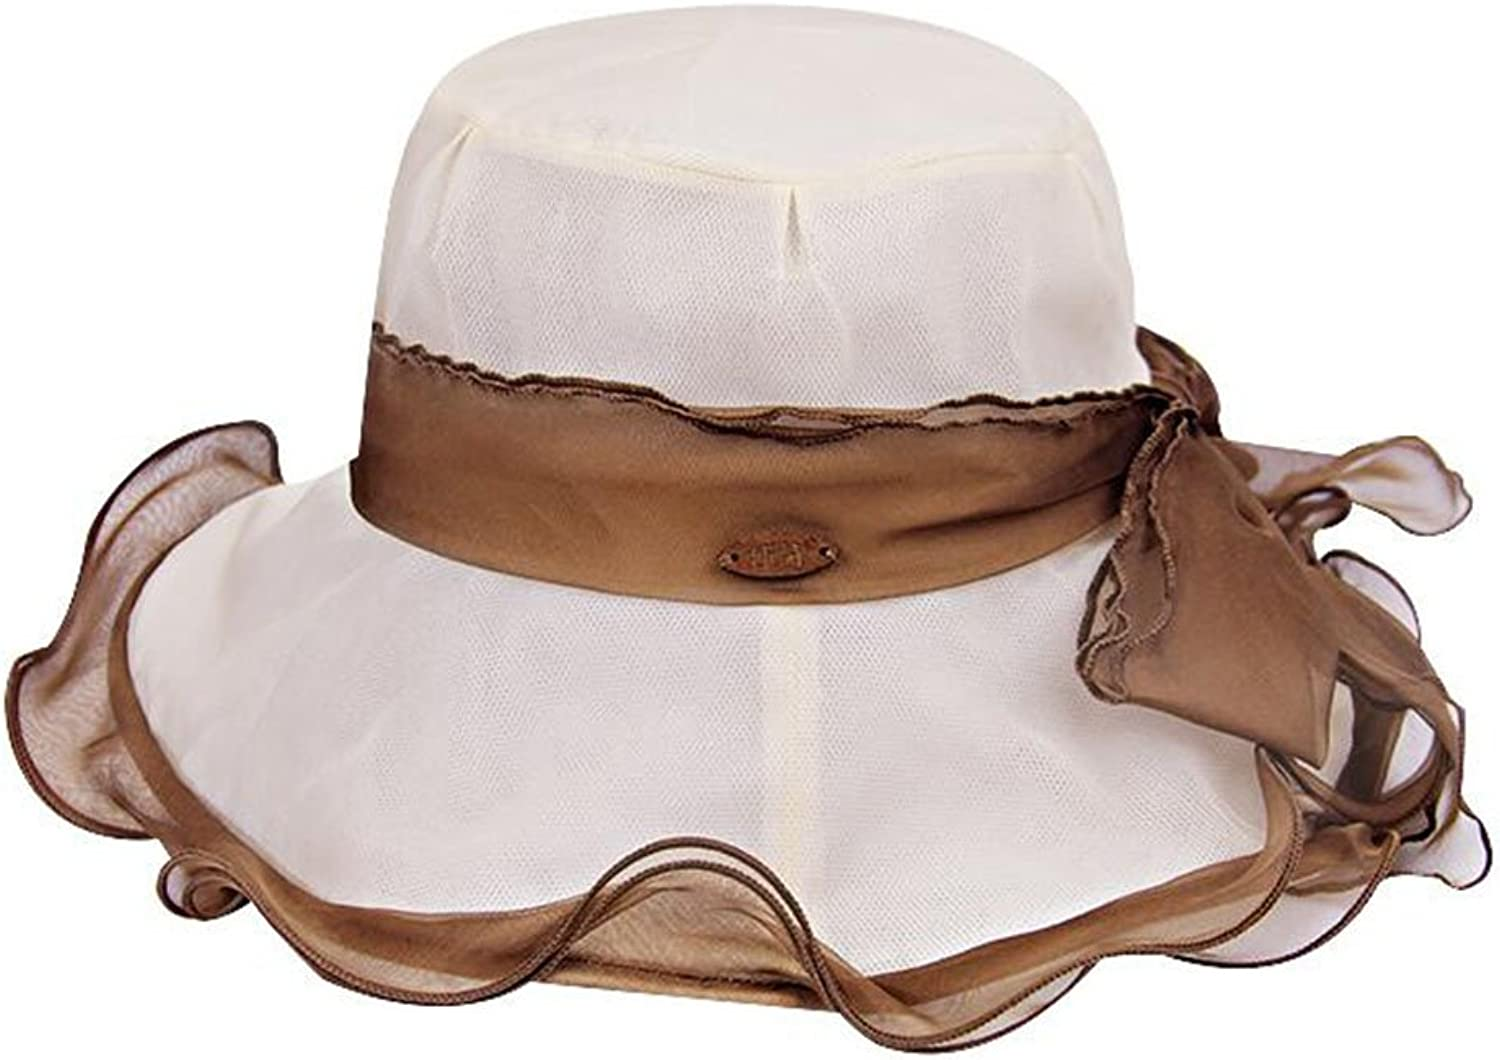 QZ Home Silk Hat Mulberry Silk Visor Female Summer Collapsible Fashion Summer Hat Cool Breathable (color   Beige)